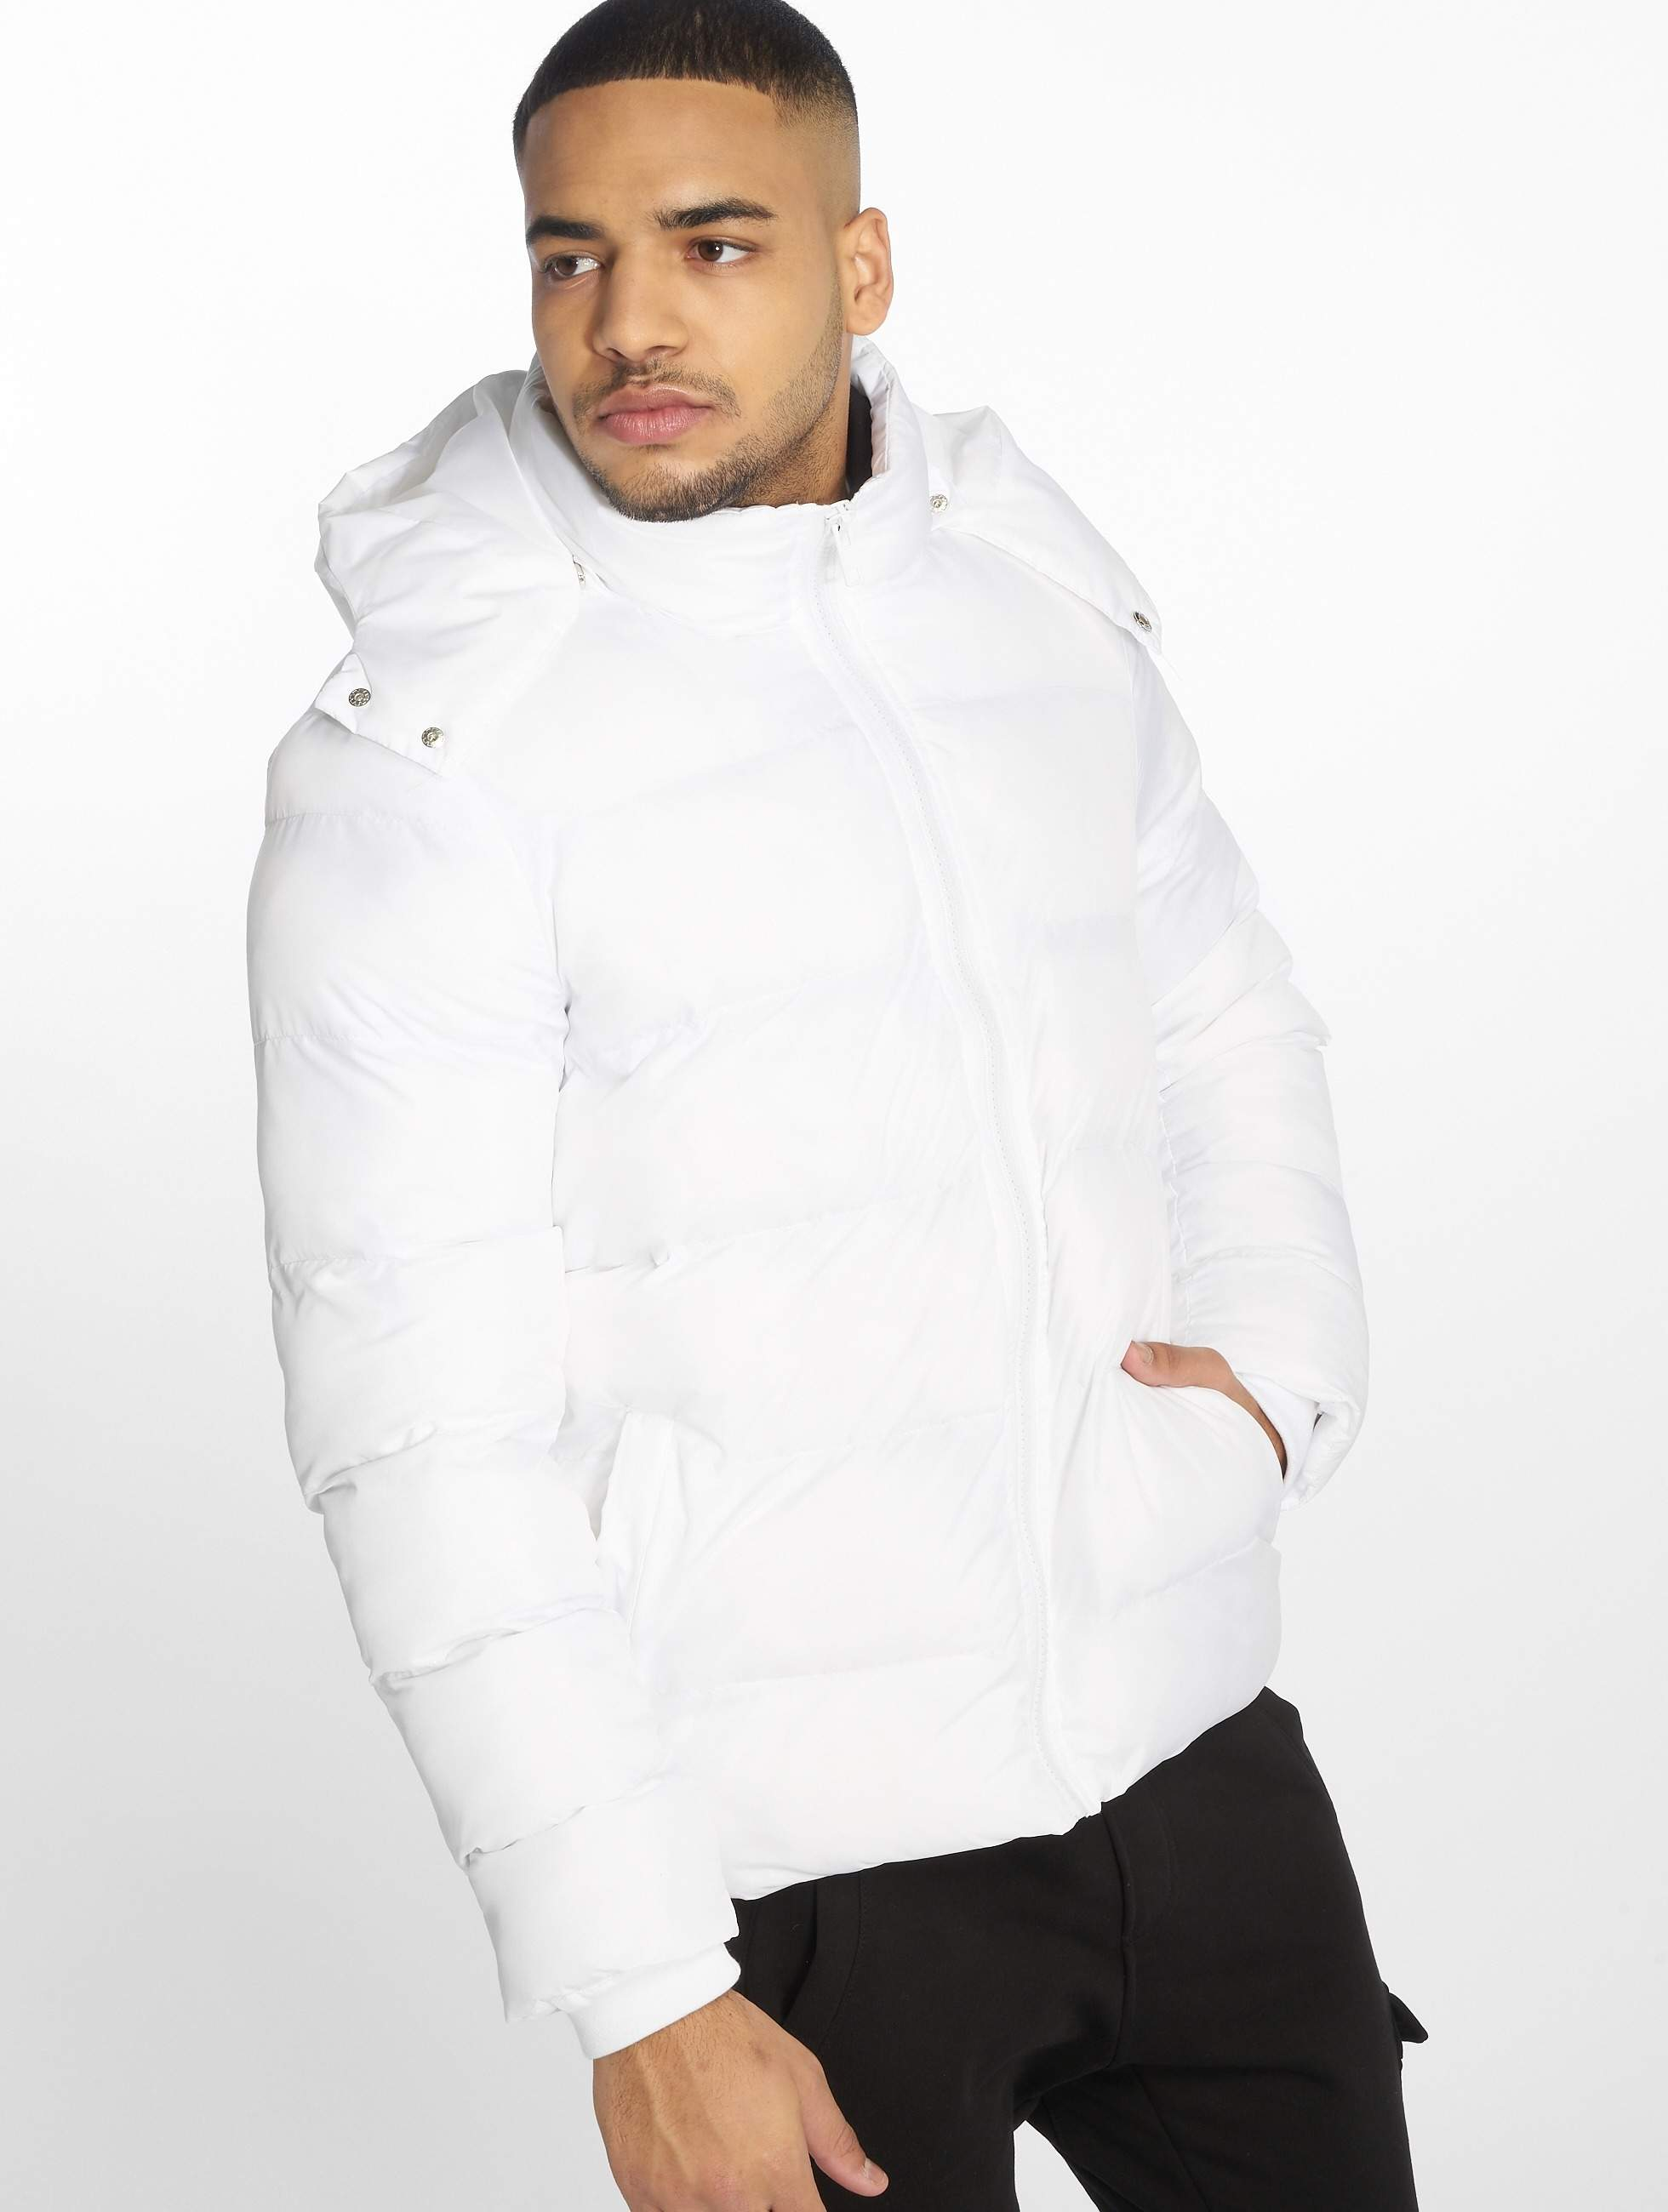 DEF / Winter Jacket Bumble in white 2XL